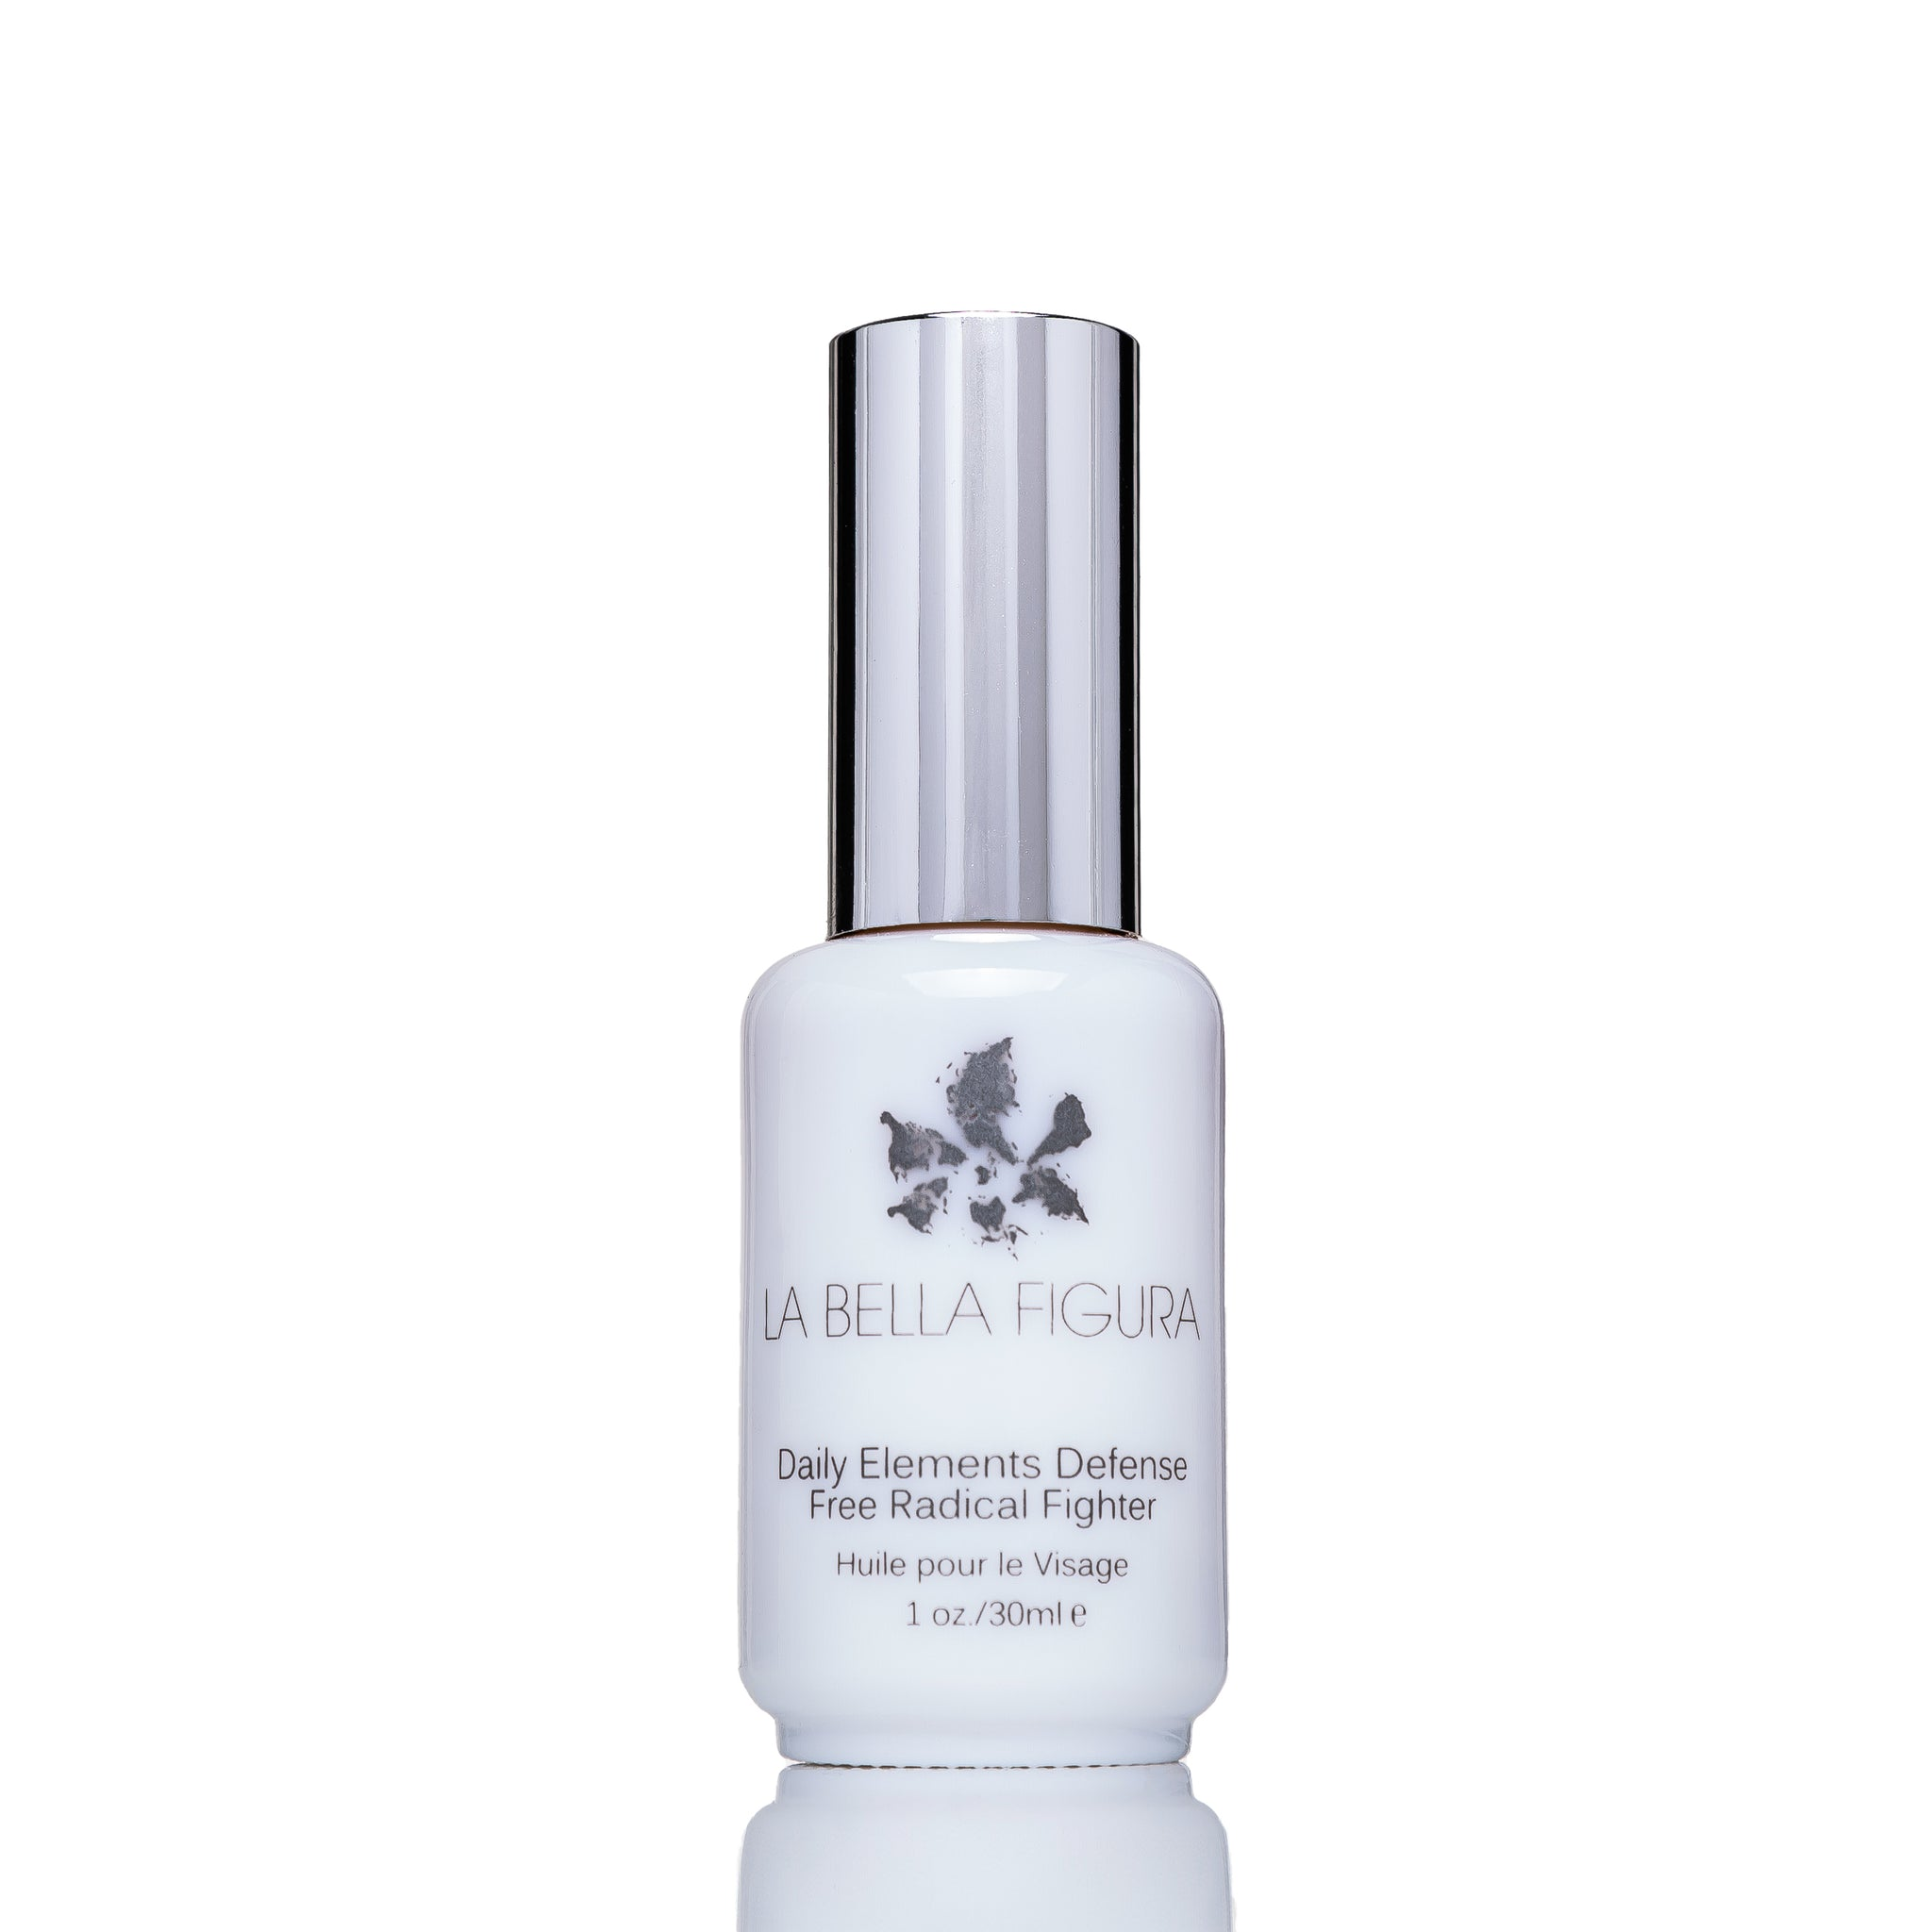 Daily Elements Defense Face Oil - La Bella Figura Beauty